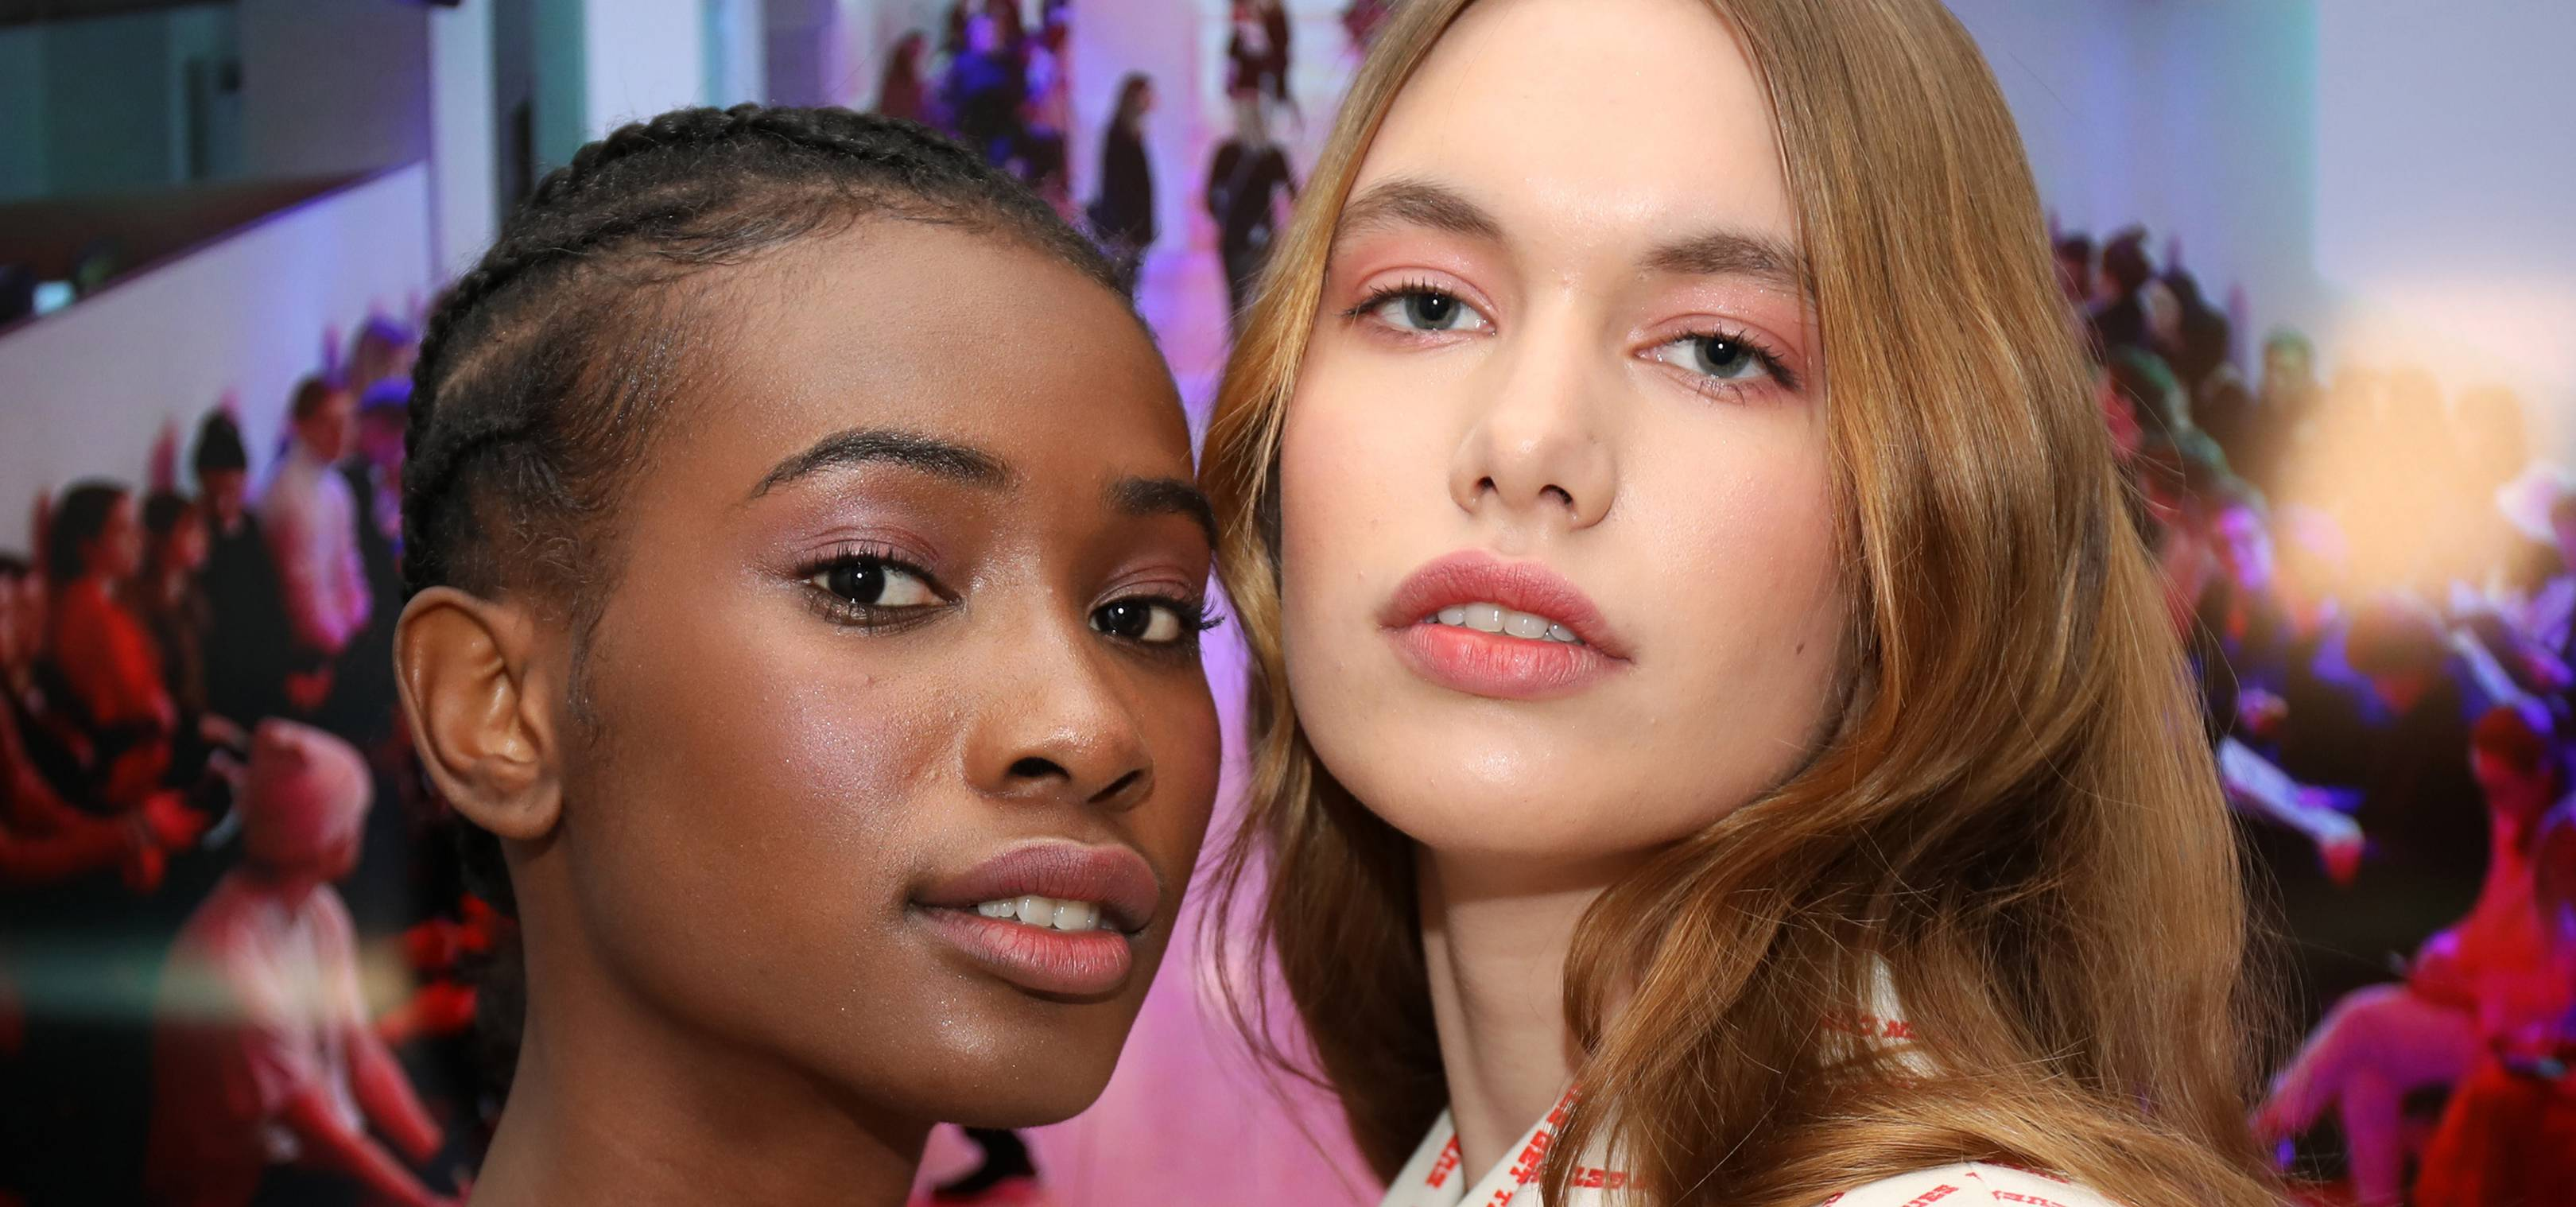 Contouring is over! The 'soft glam' makeup look is the trend of 2020, here's how to achieve it